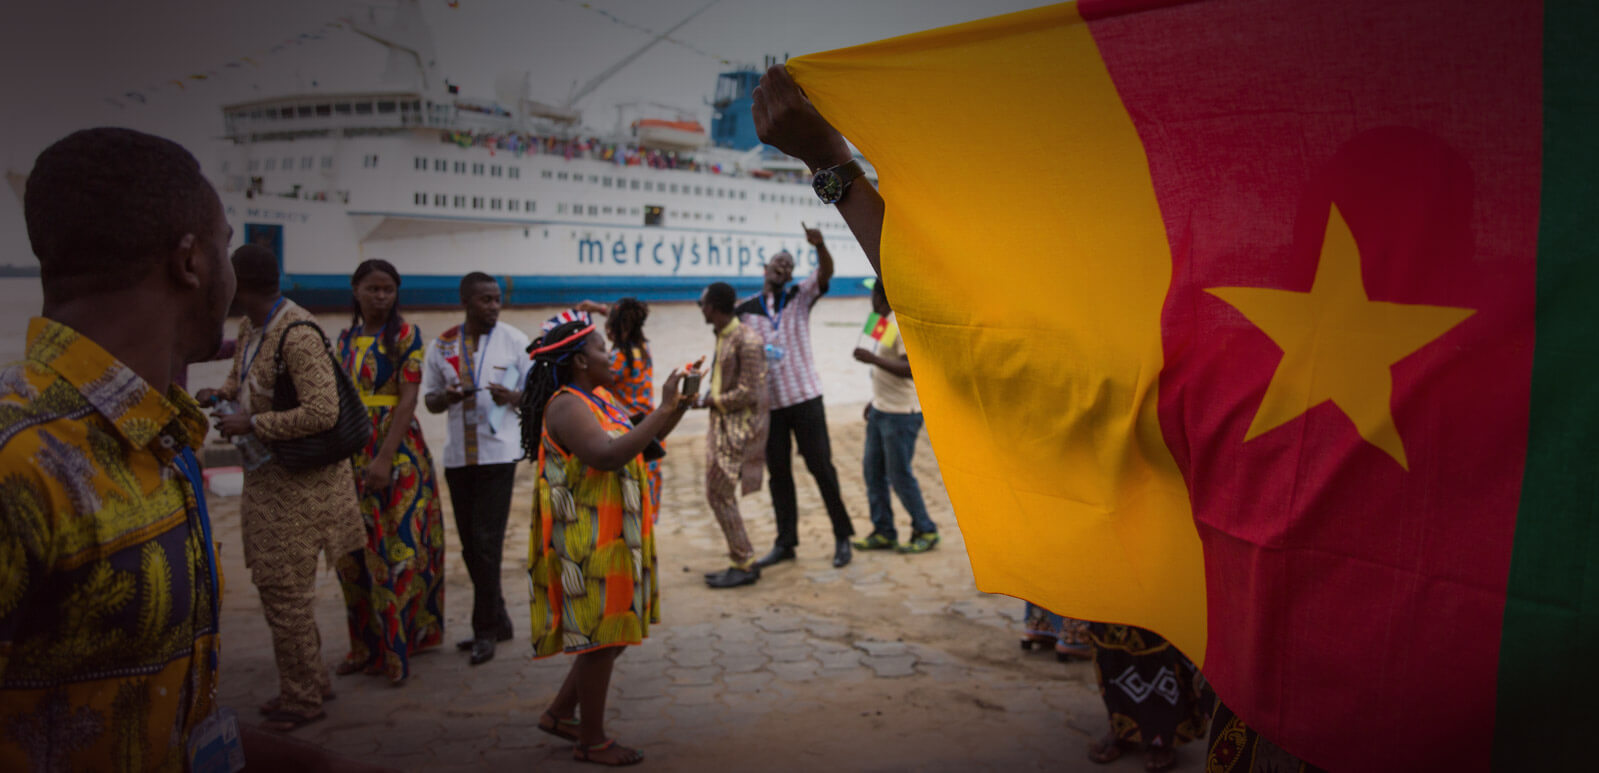 https://mercyships.ch/wp-content/uploads/2019/04/Cameroon_arrival.jpg